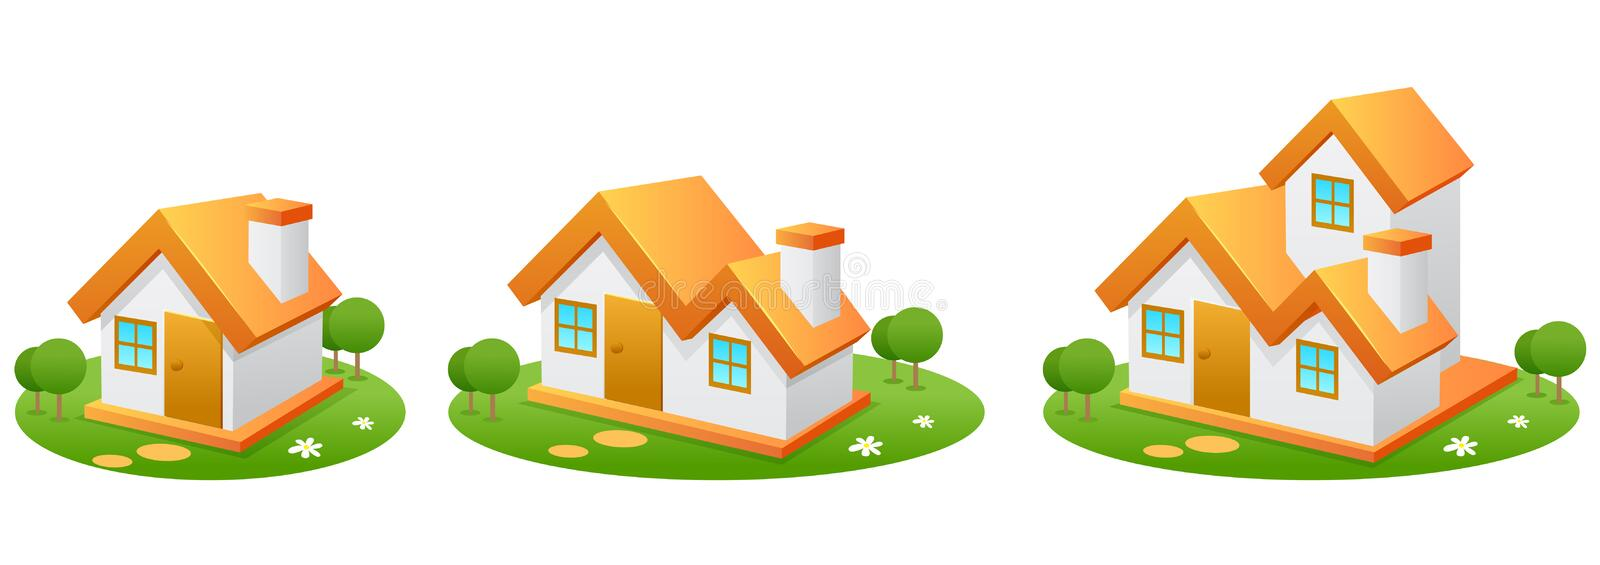 Download Houses stock illustration. Image of icon, residence, property - 17119951